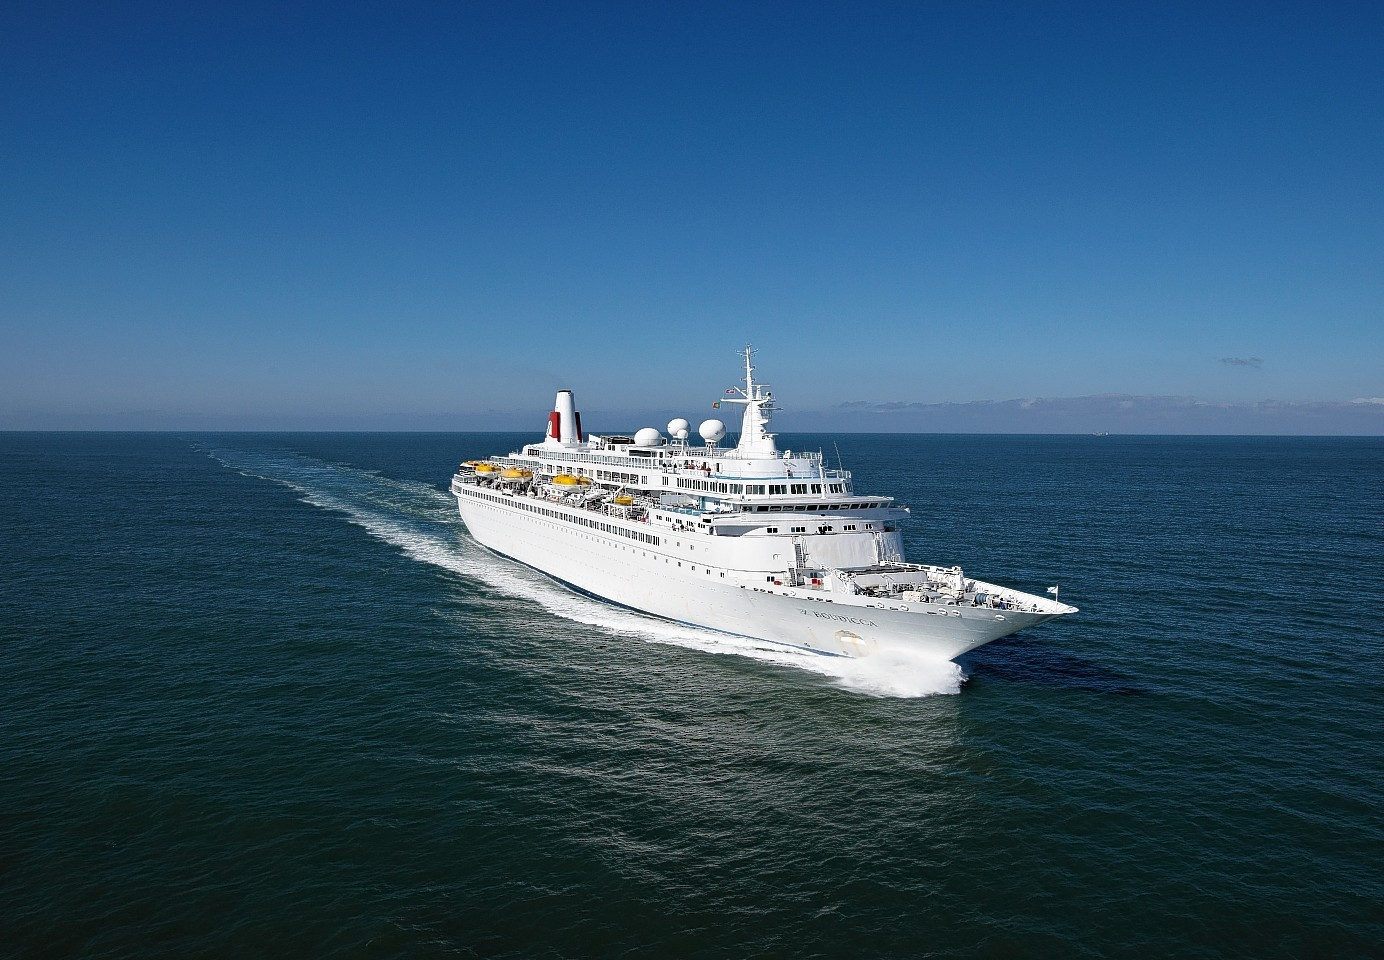 The Boudicca is due to arrive in Fort William on Wednesday